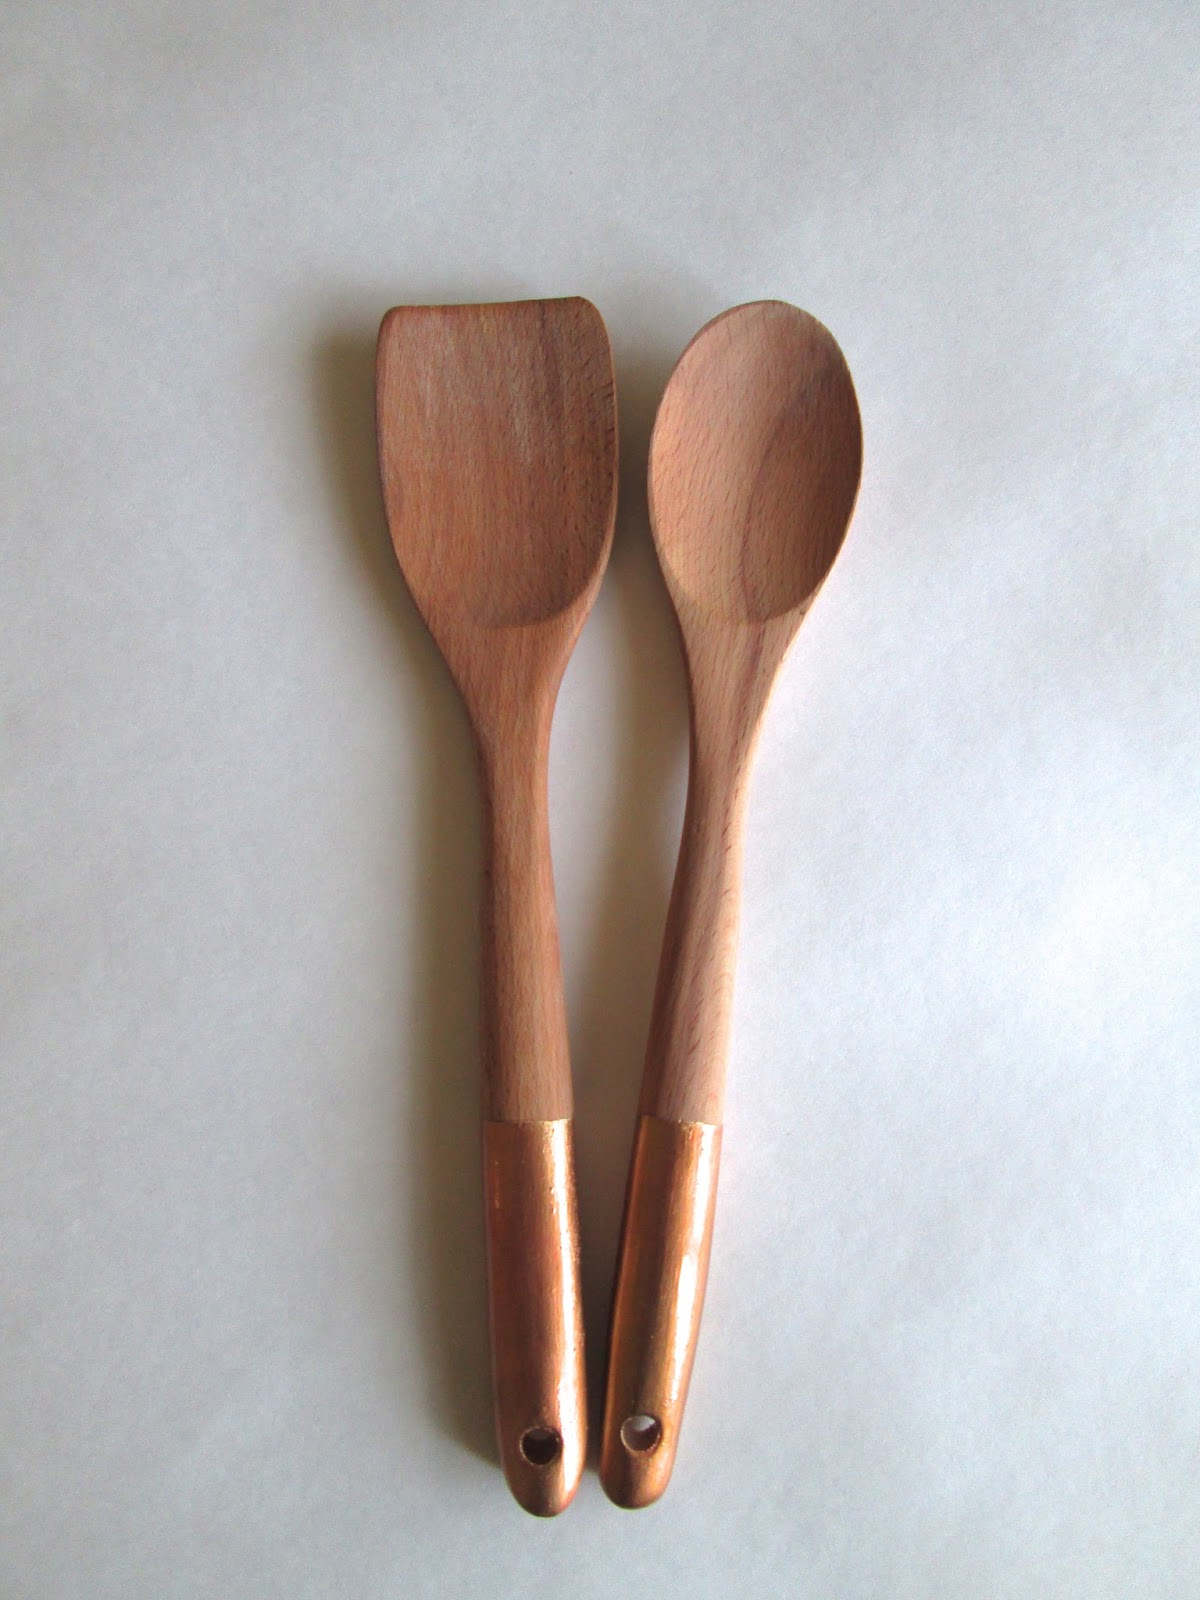 Anthropologie Copper Plated Serving Set Knock-off